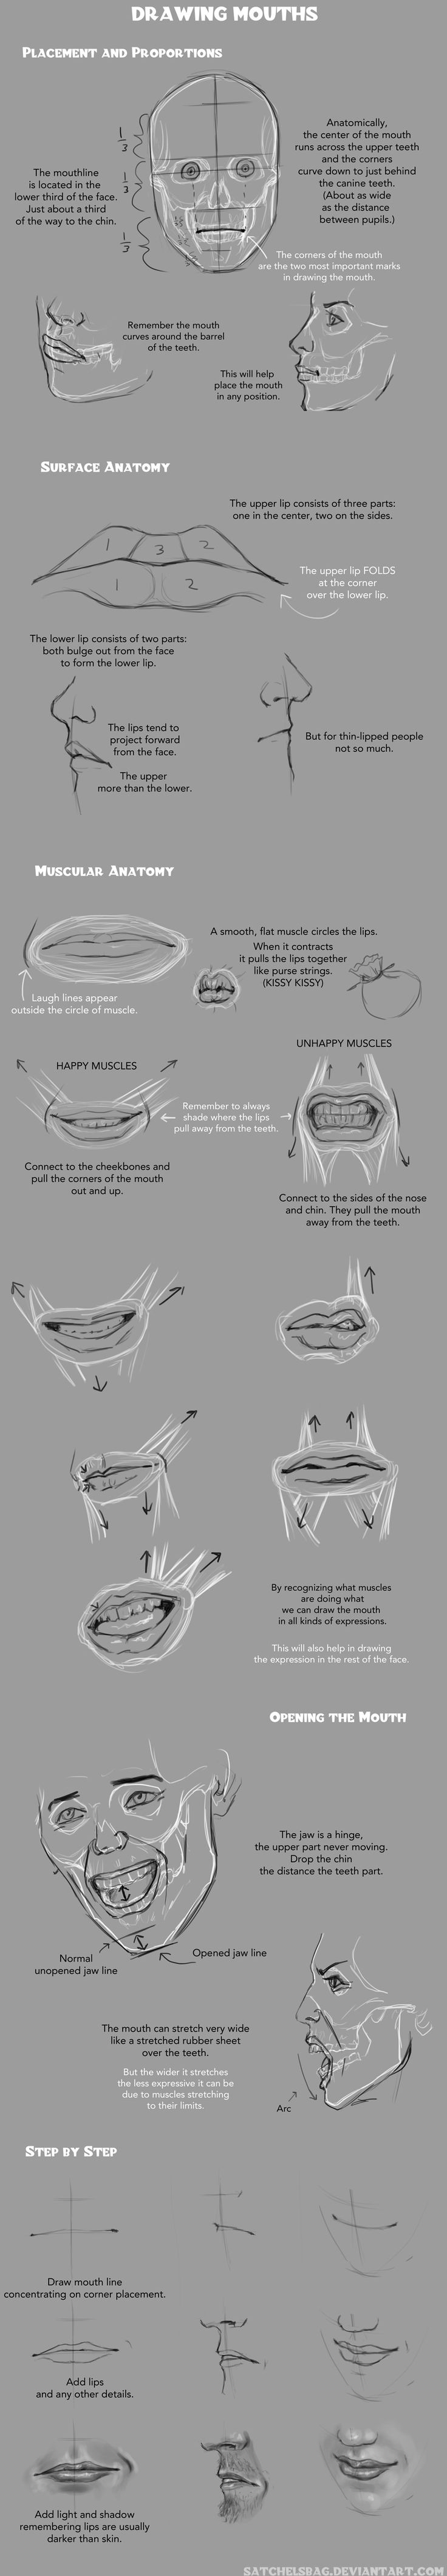 Drawing Mouths Tutorial by DianetheKraus on DeviantArt